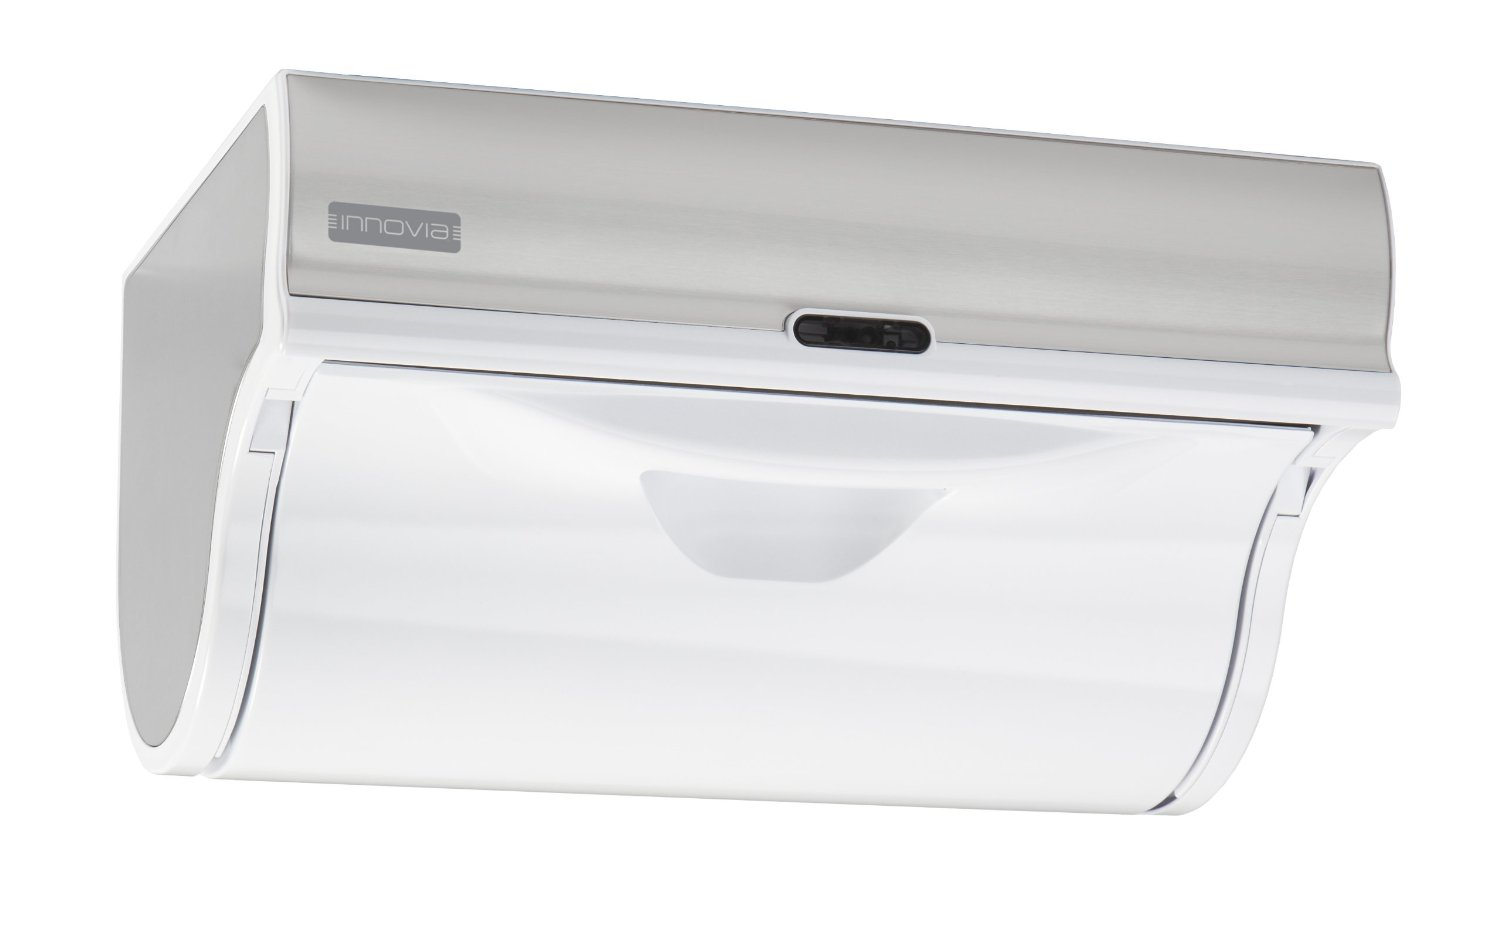 Innovia wb2 159w automatic paper towel dispenser white for Automatic paper towel